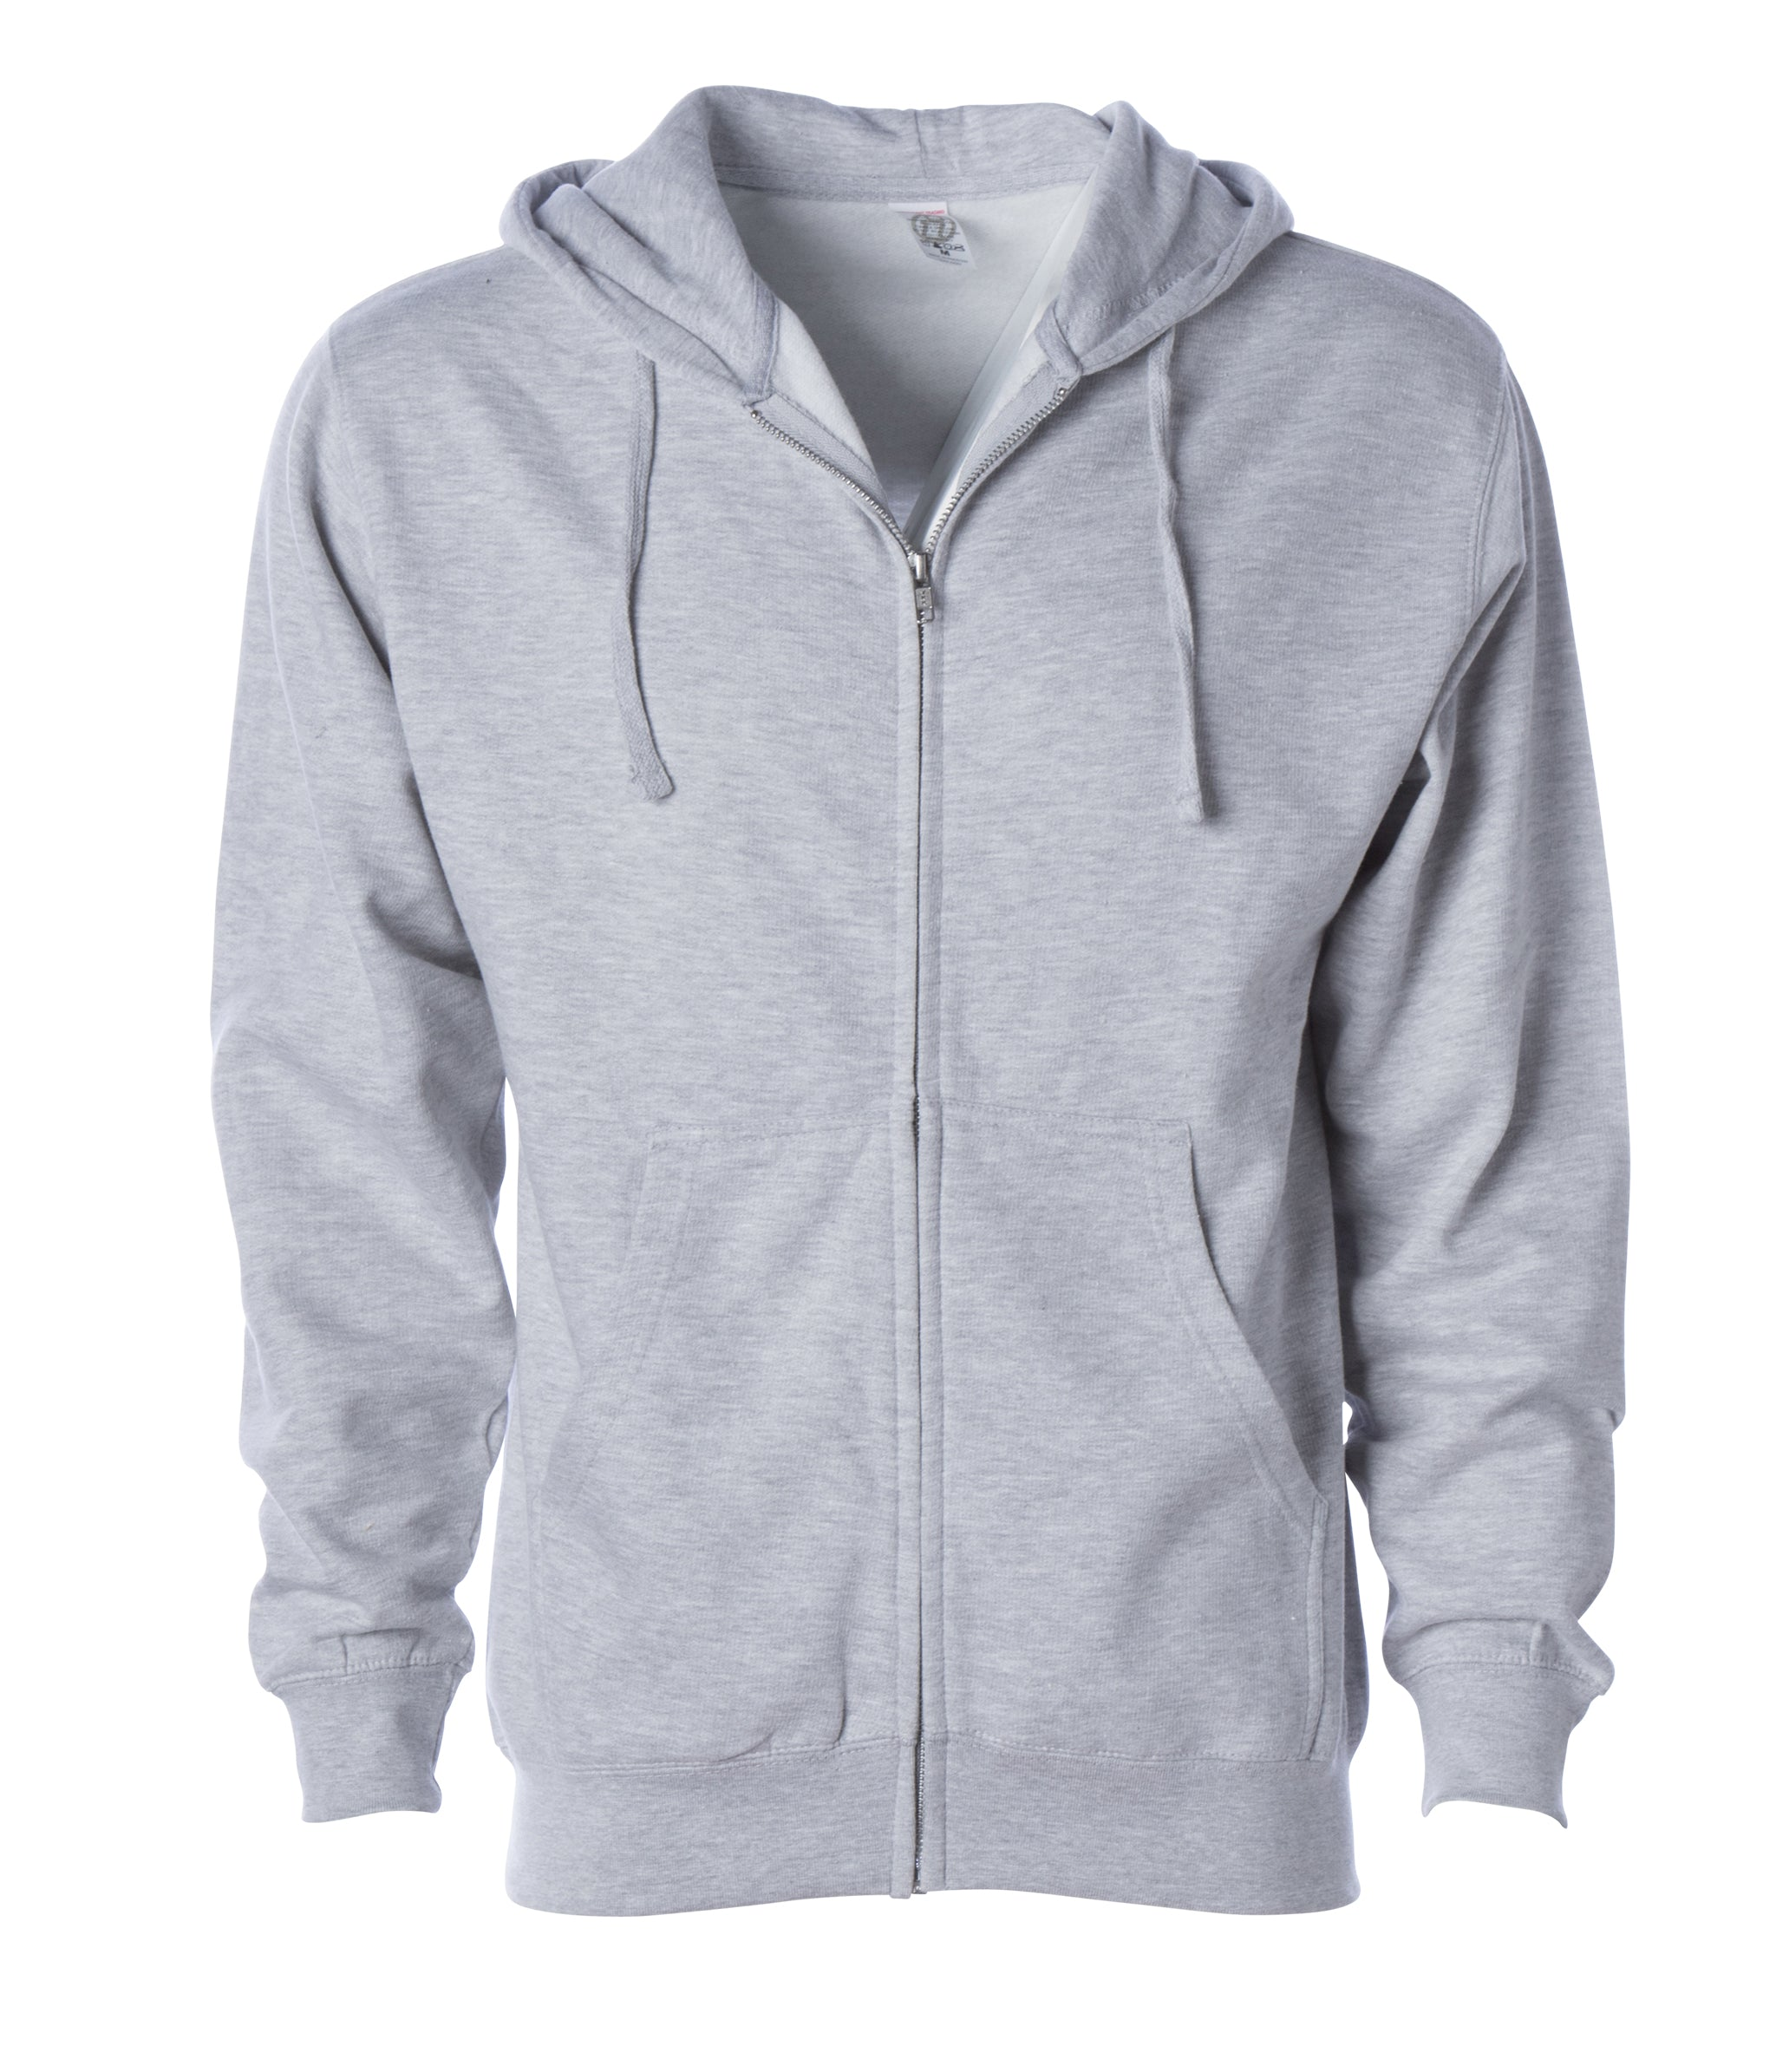 483d425b1 Midweight Zip Hooded Sweatshirts